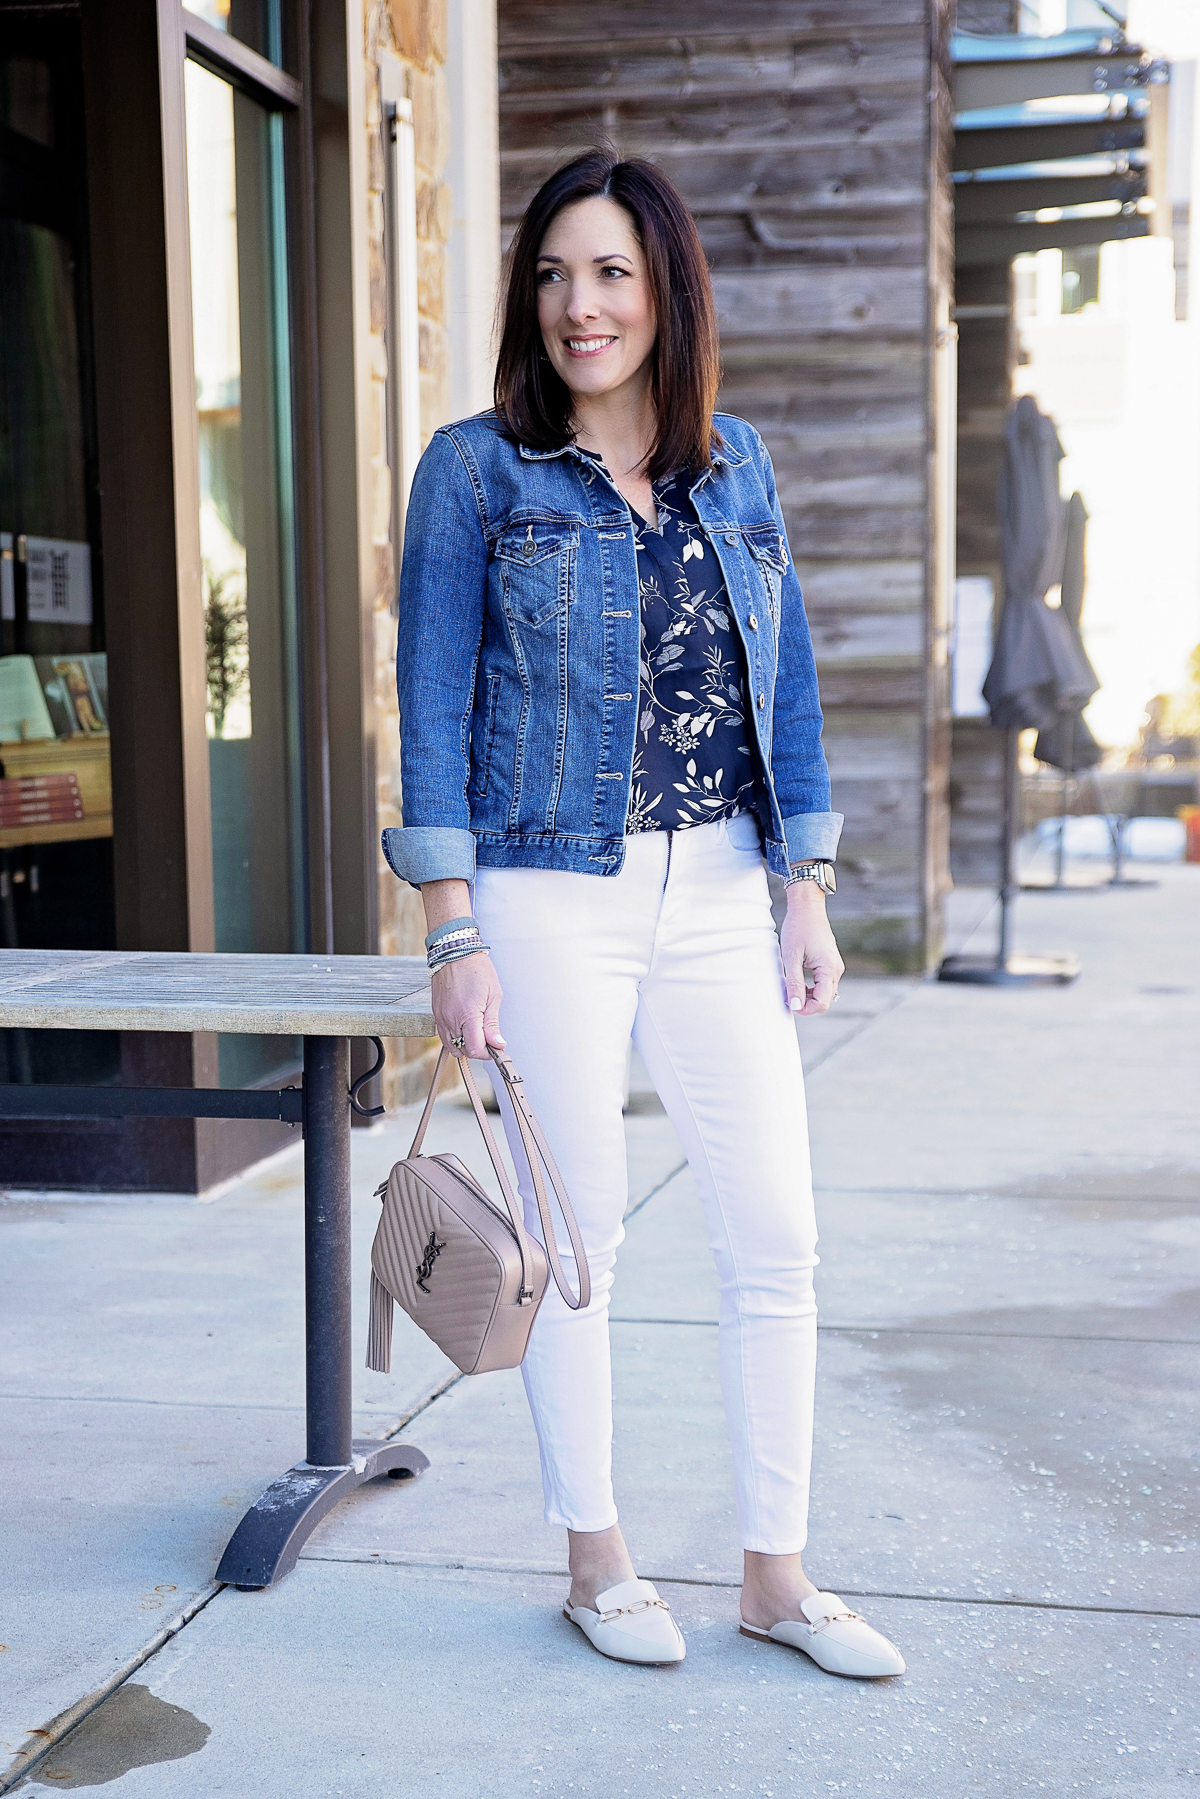 White Jeans Over 40 - Jo-Lynne Shane @jolynneshane, best white jeans, white jeans over 40, how to wear white jeans, white jeans outfit, white jeans outfit summer, outfits with white jeans, white pants